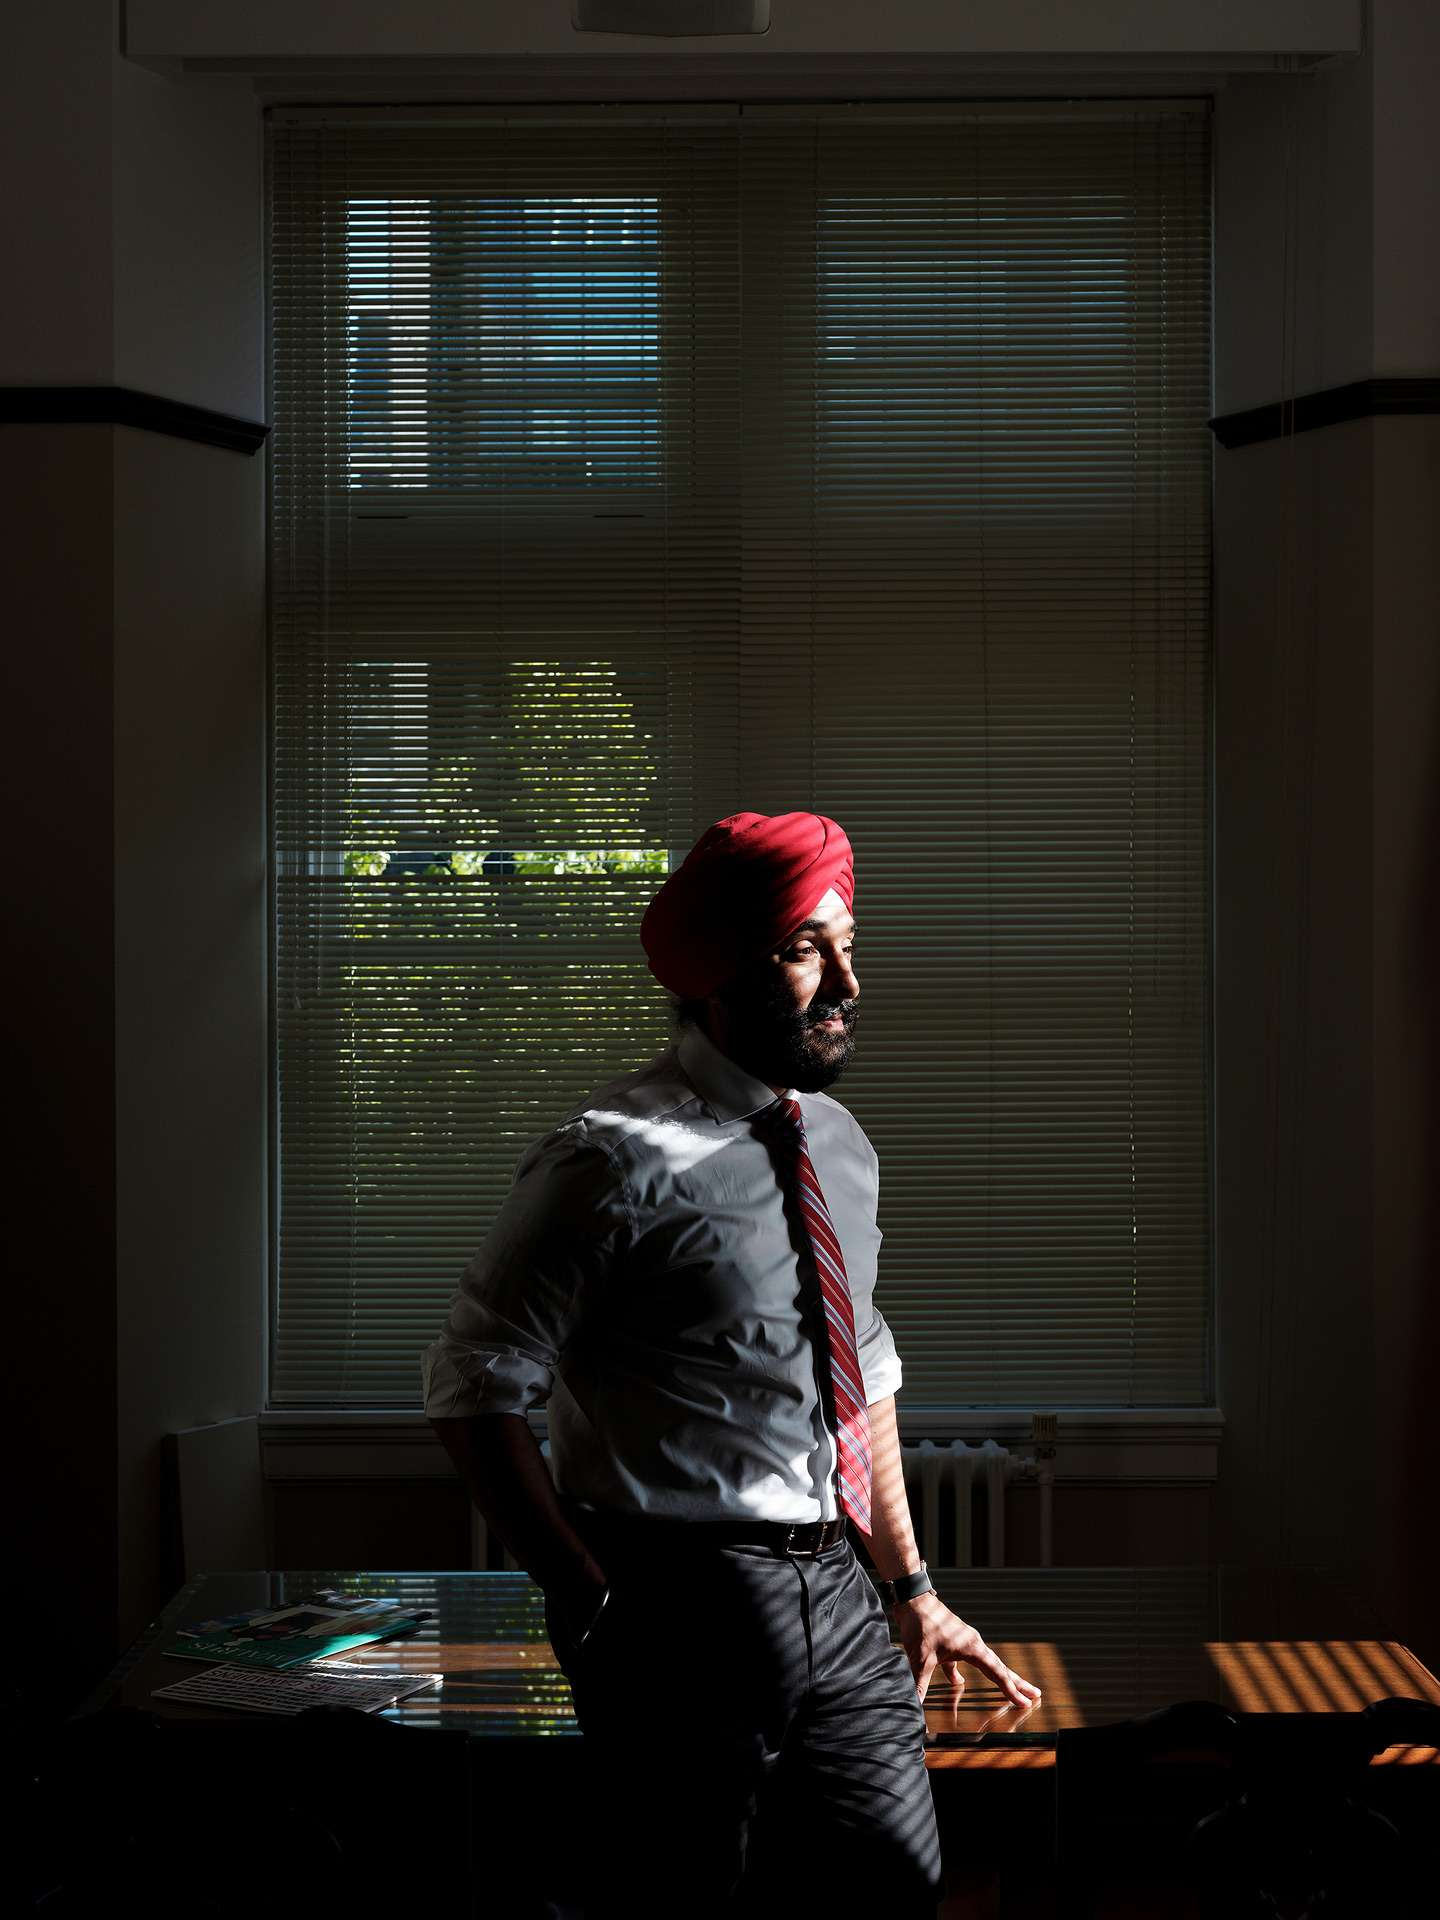 CPA Navdeep Bains in casual suit in his office in sunlight by Guillaume Simoneau for Pivot Magazine